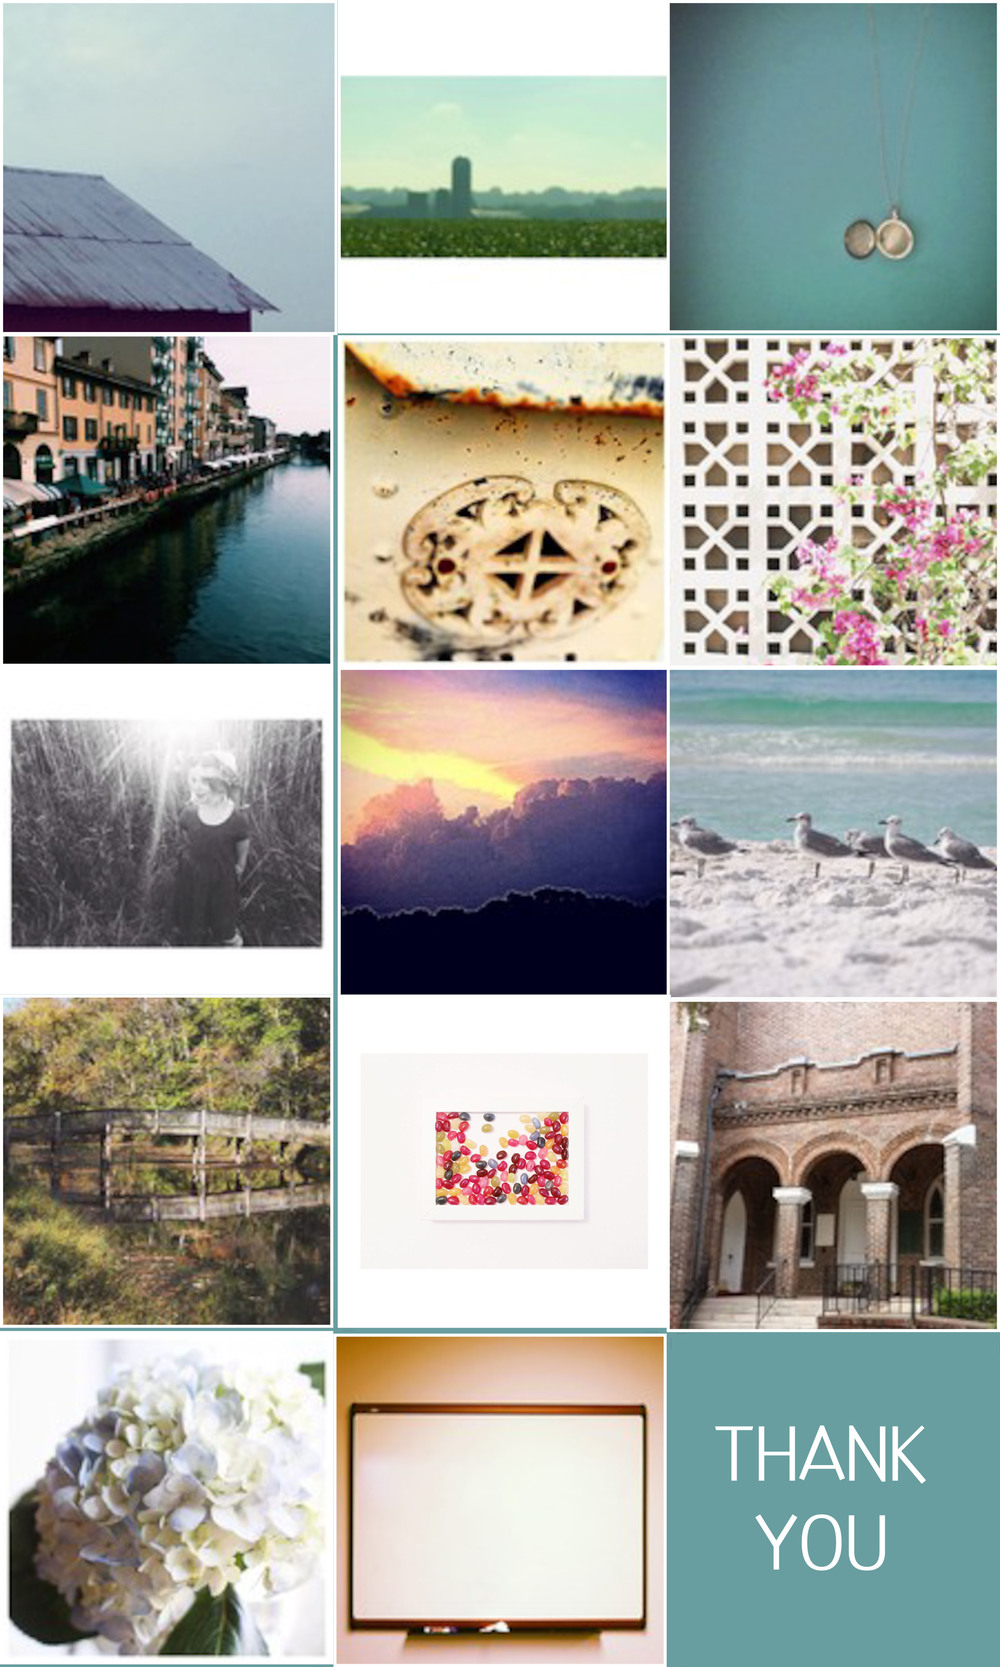 Row 1 .  Muted:  jenni_429 ; Blur:  shalaghhogan;    Alone:  annacgunn  . Row 2.  Water:  maggiemuses;  Exposed : expectjoy1111;  Pattern:  whateverislovelier .   Row 3 .  Flash:  cuelifephoto;  Transcendent:  bury_ecilop;  Gathering : fauzita;  Row 4 .  Symmetry : currenttempo.  Fill the Frame:  lacroixmaision;  Emotion:  mjkeim.  Row 5 .  High Key:  jackiecuervo;  Horizon:  julie.kerry.37